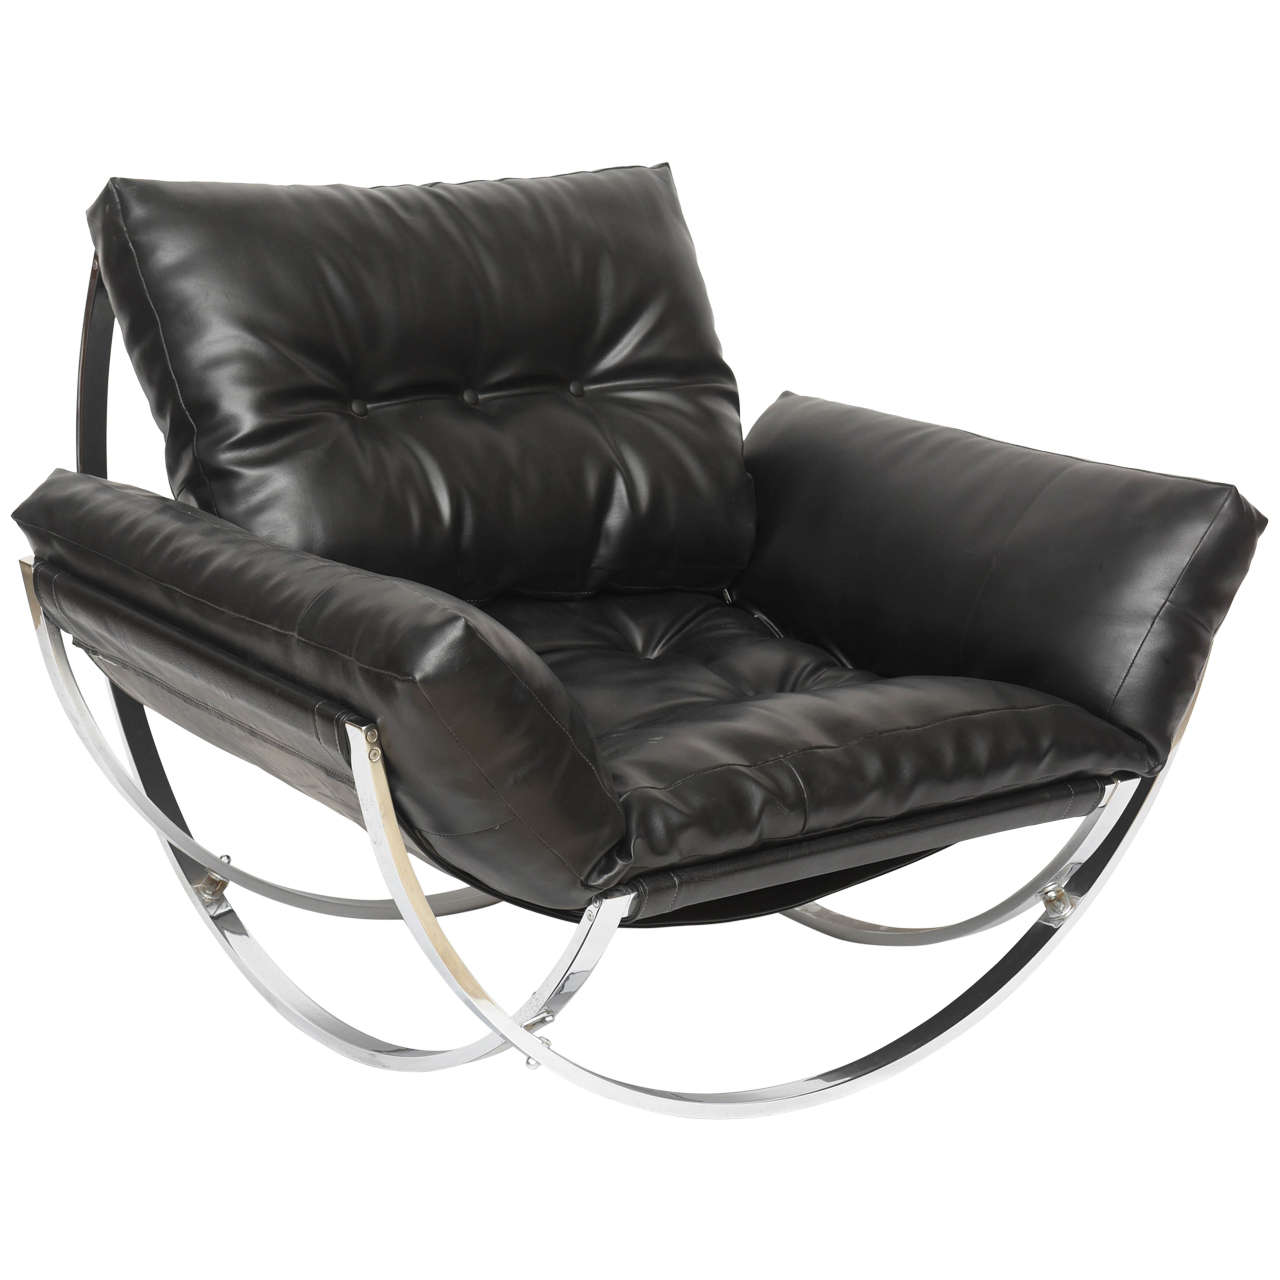 Genial Italian Modern Polished Chrome And Leather Chair By Stendig For Sale